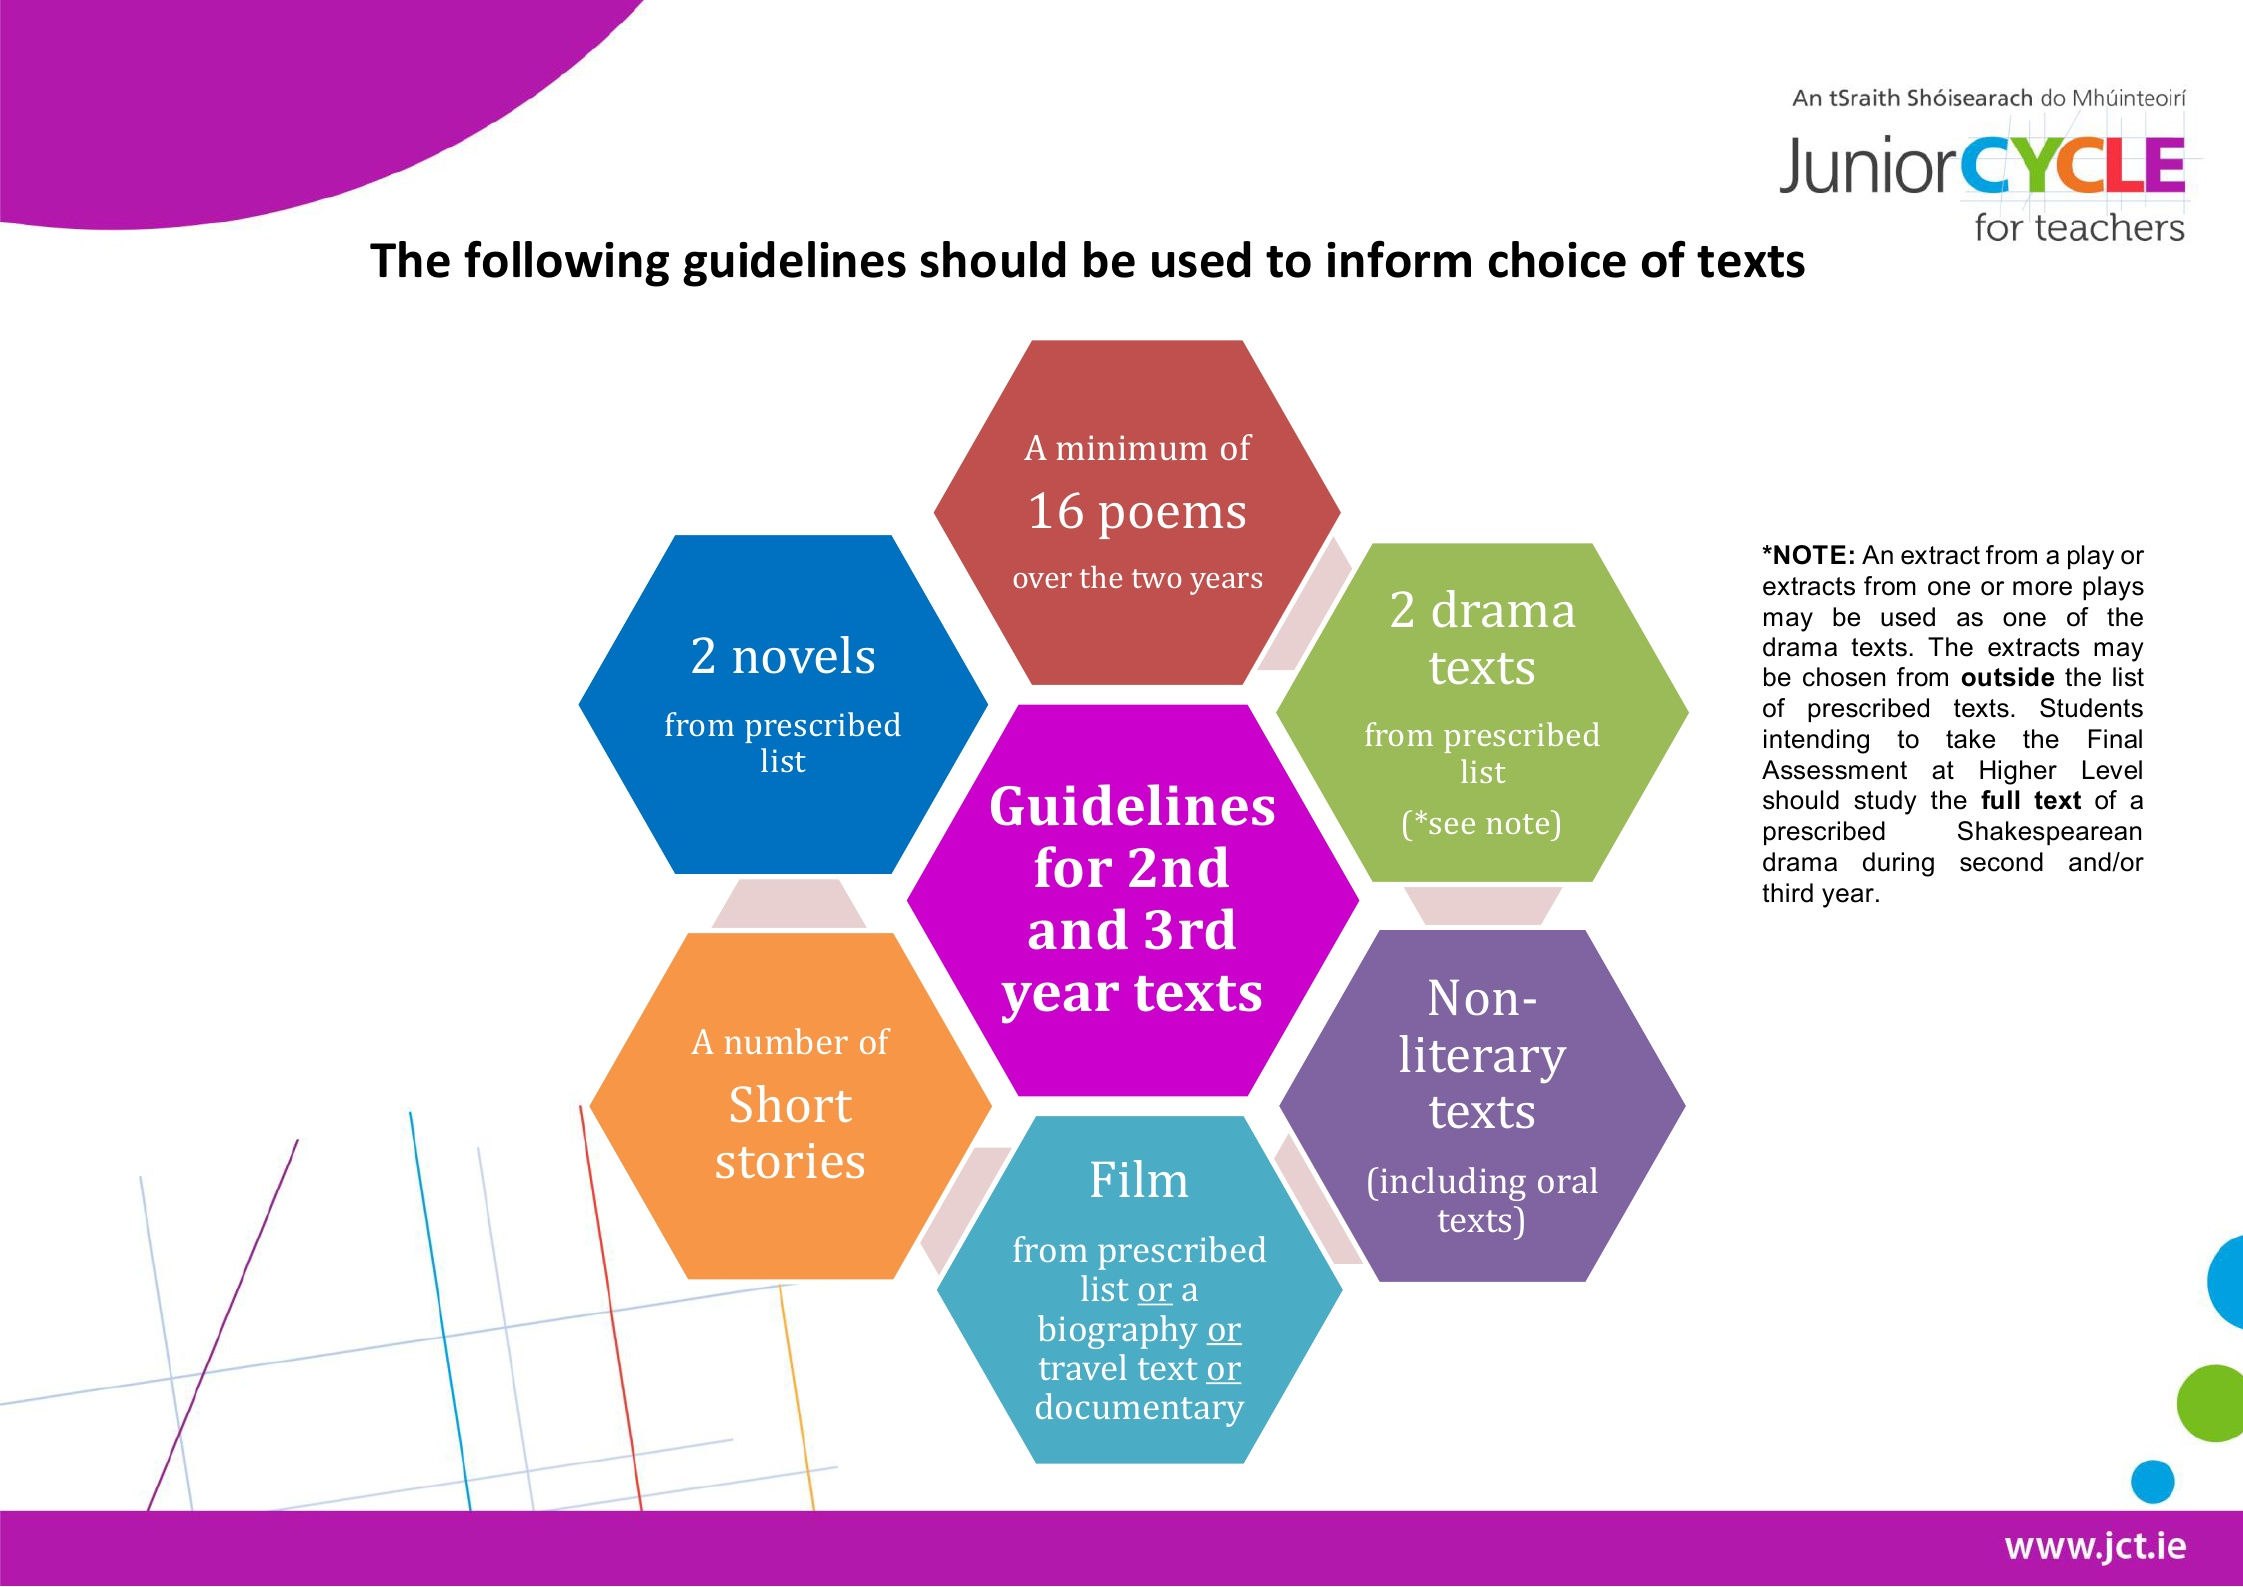 Guidelines to inform choice of texts